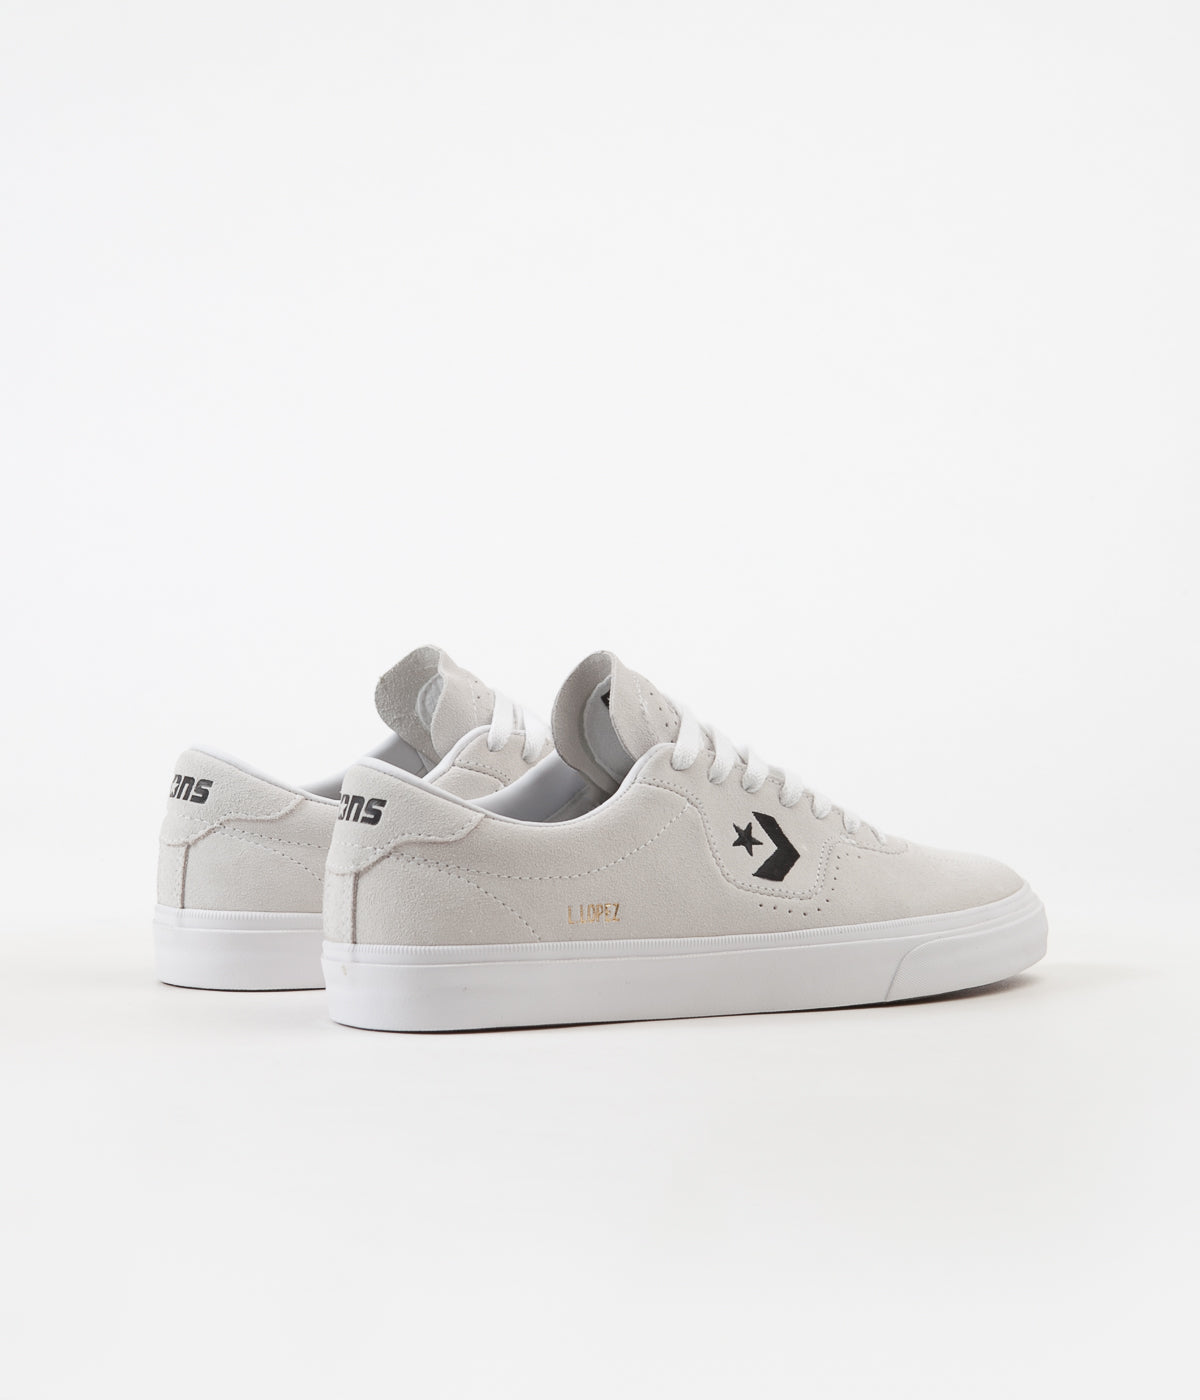 c47c37430d0a ... Converse Louie Lopez Pro Ox Shoes - White   White   Black ...